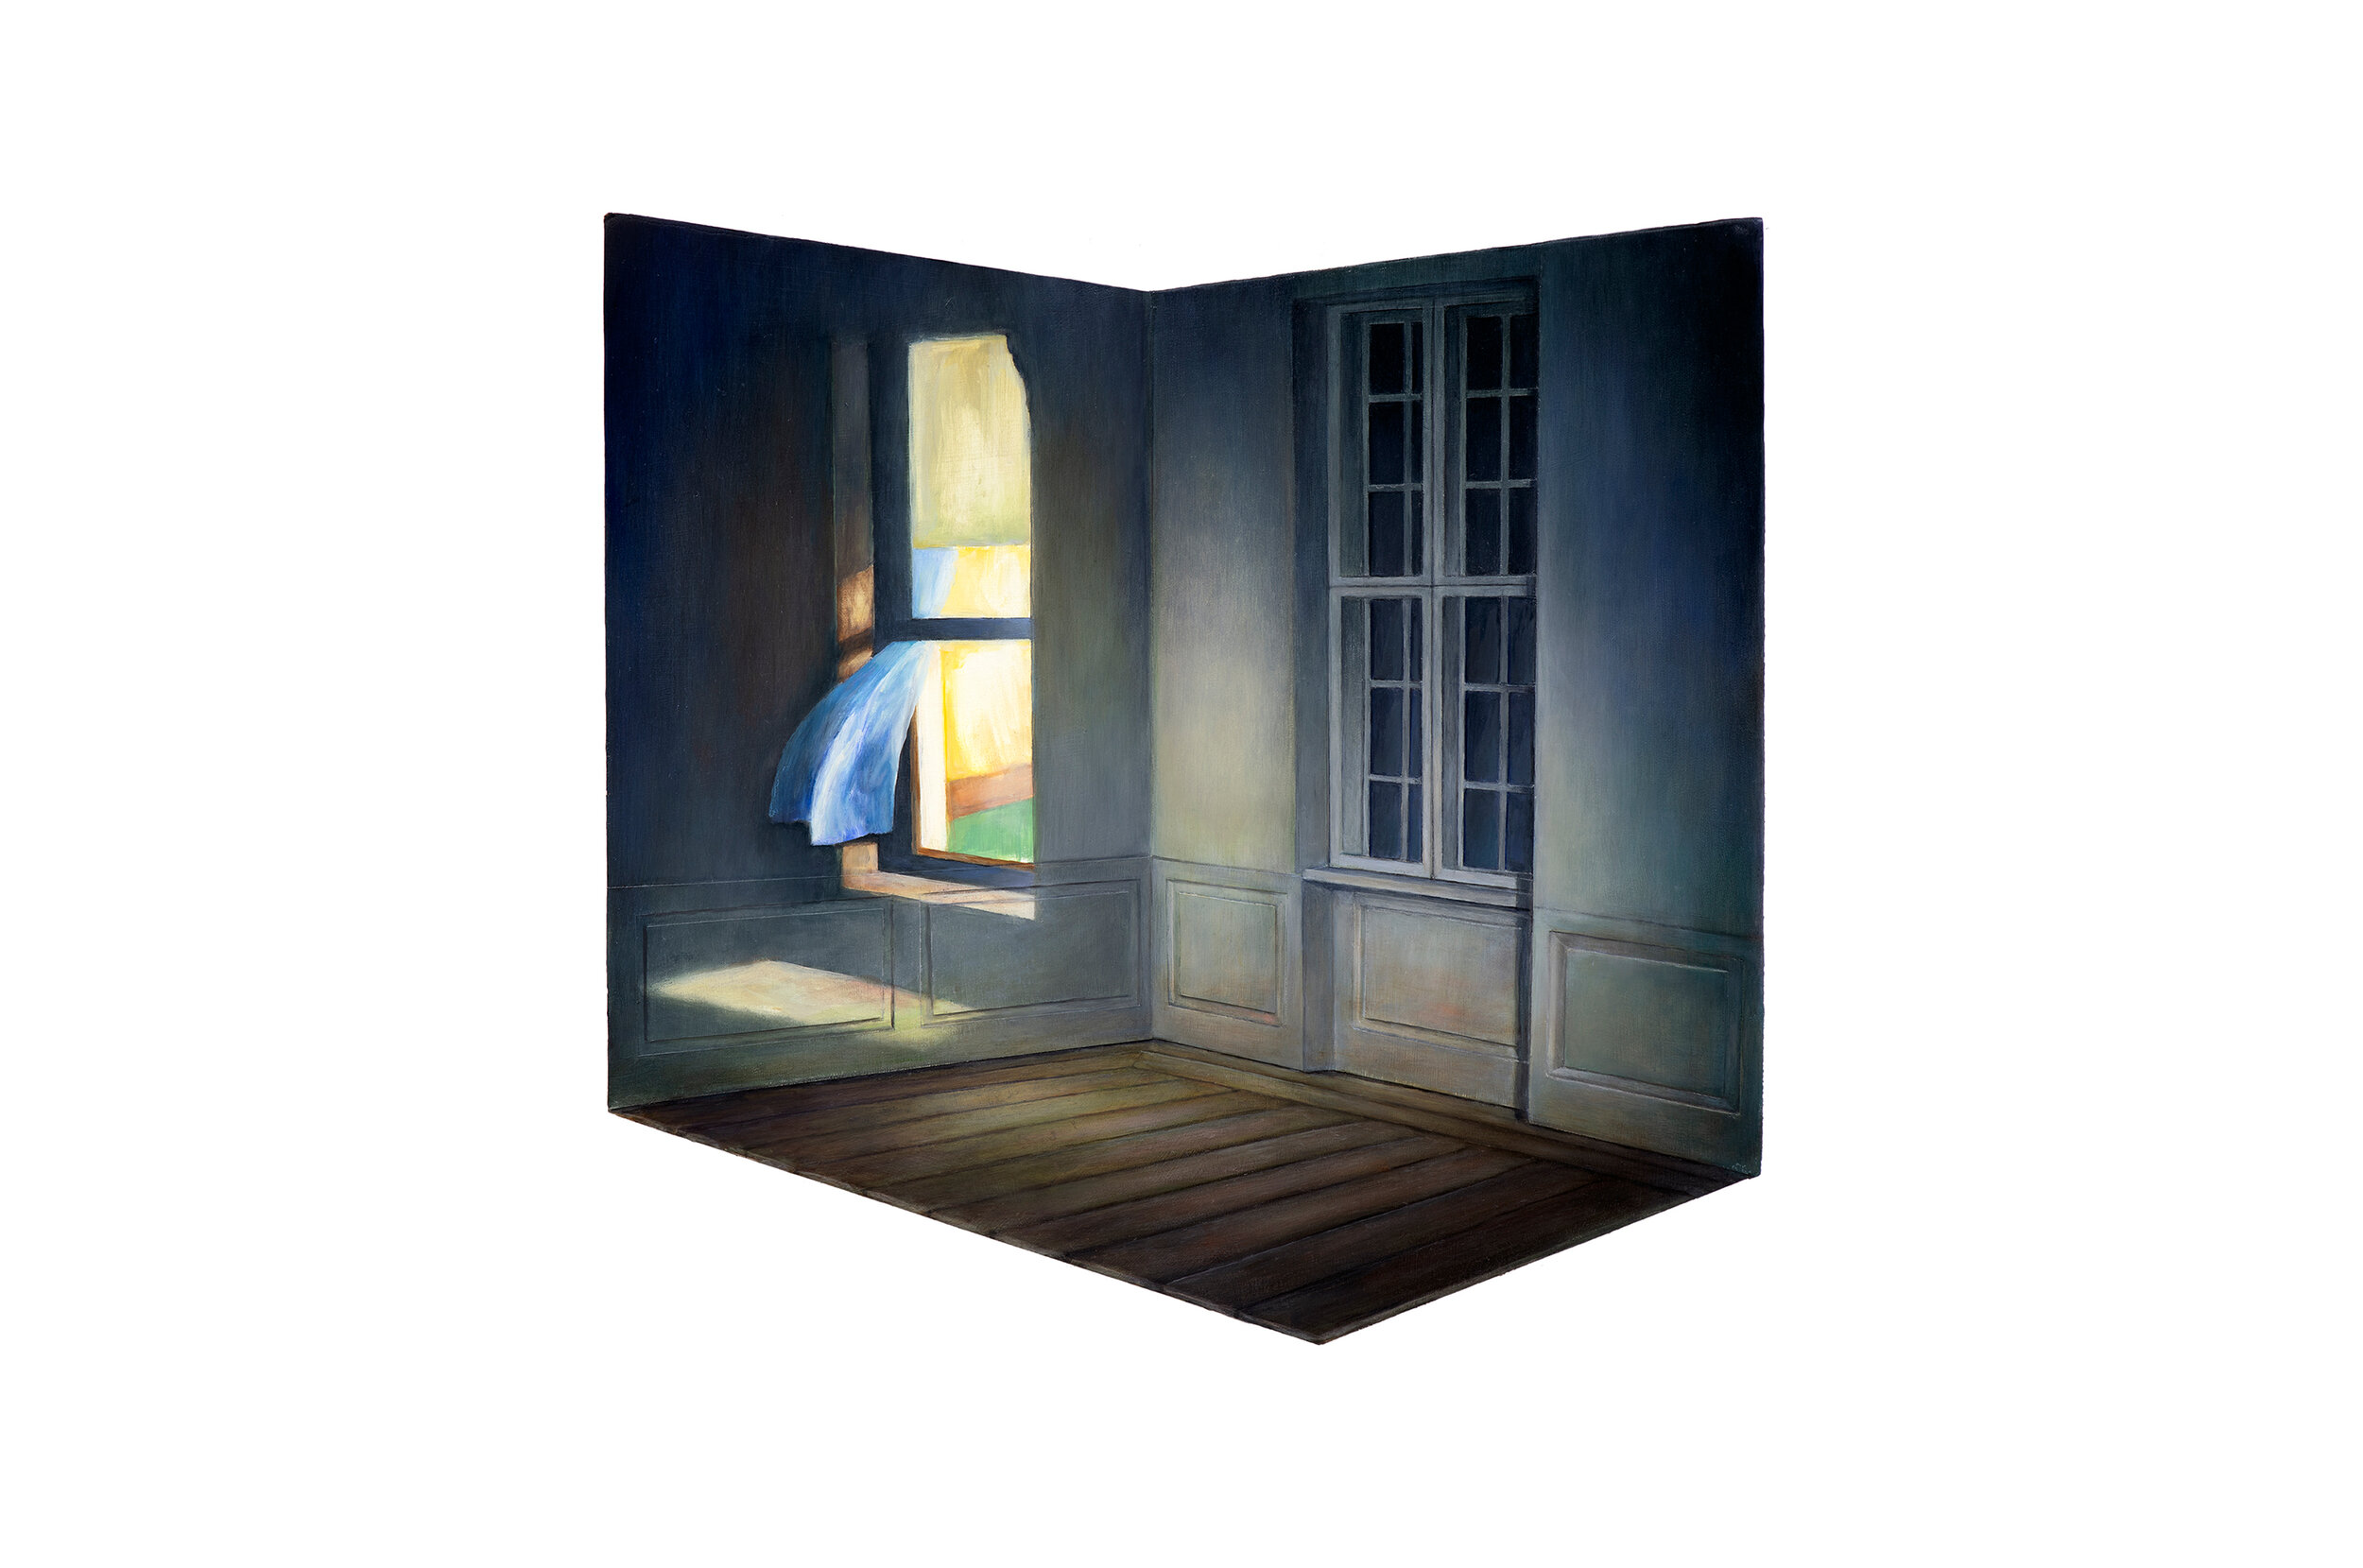 """Edward Hopper's """"Night Windows"""" Projected over Model of Hammershøi's Room   2019  Oil on shaped and raised relief panel  14.5 x 15 inches"""